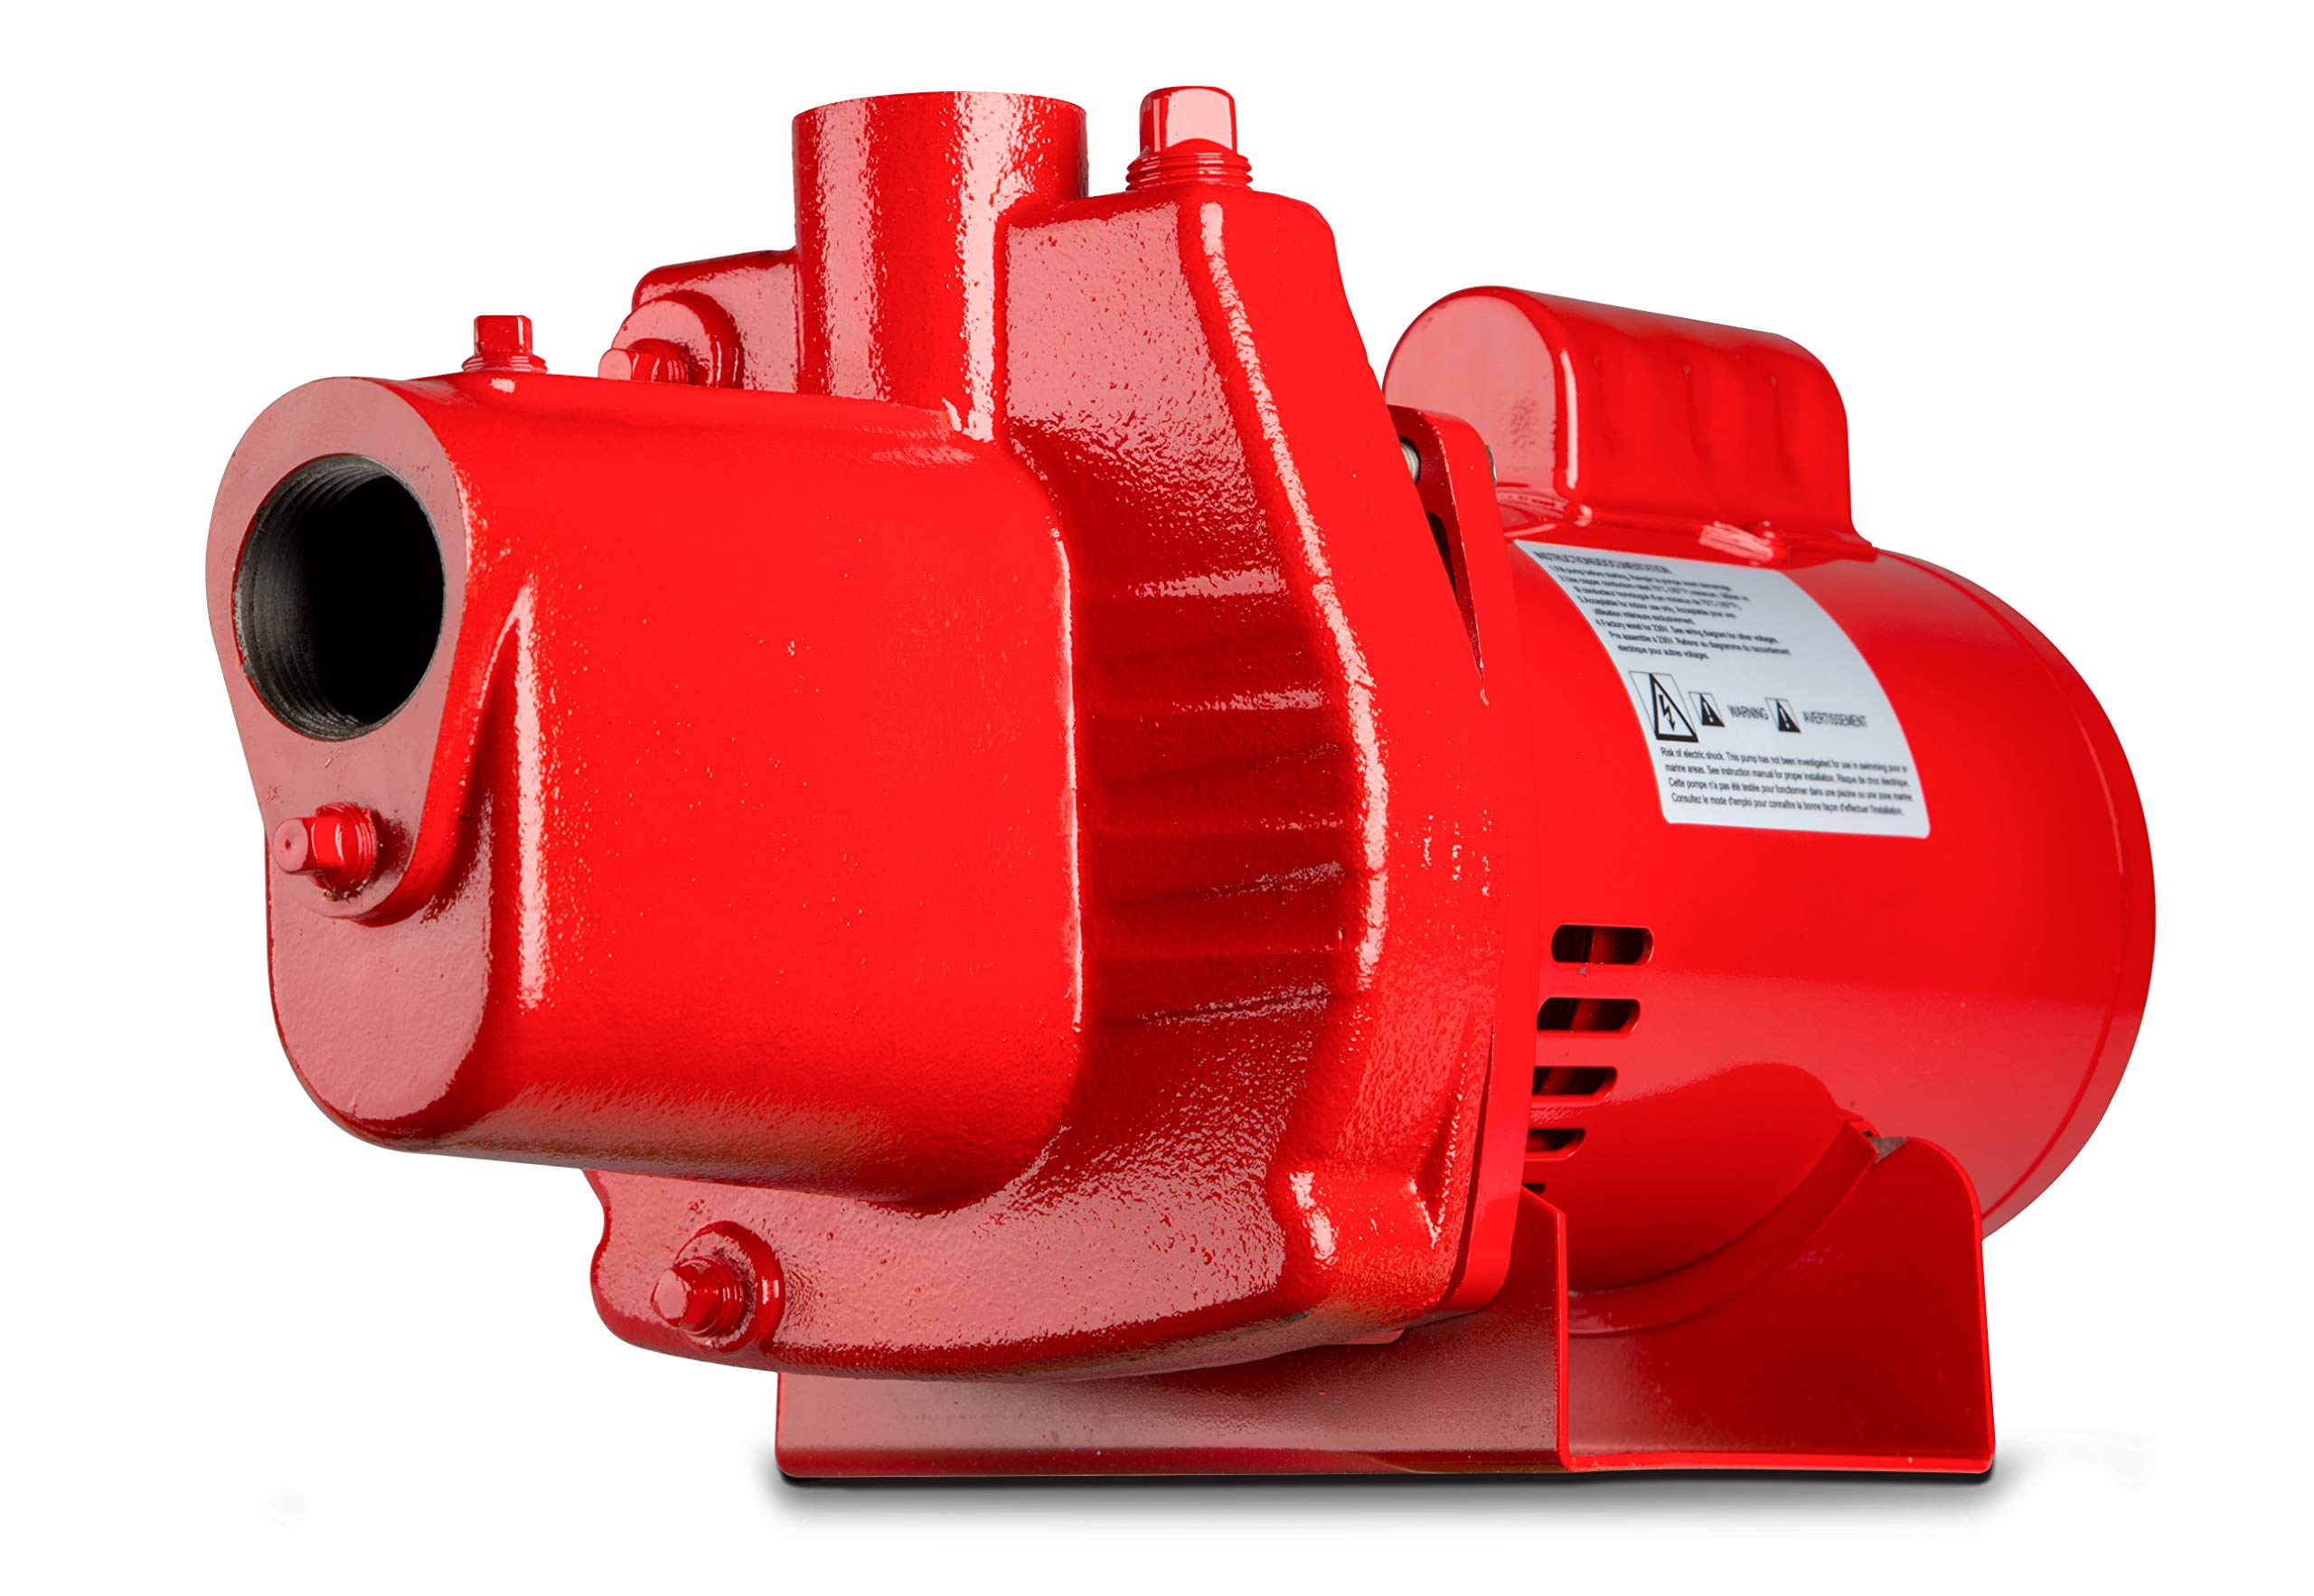 Red Lion RJS-100-PREM 602208 Premium Cast Iron Shallow Jet Pump for Wells up to 25 ft, 9.1 x 17.8 x 9.1 inches, red by Red Lion